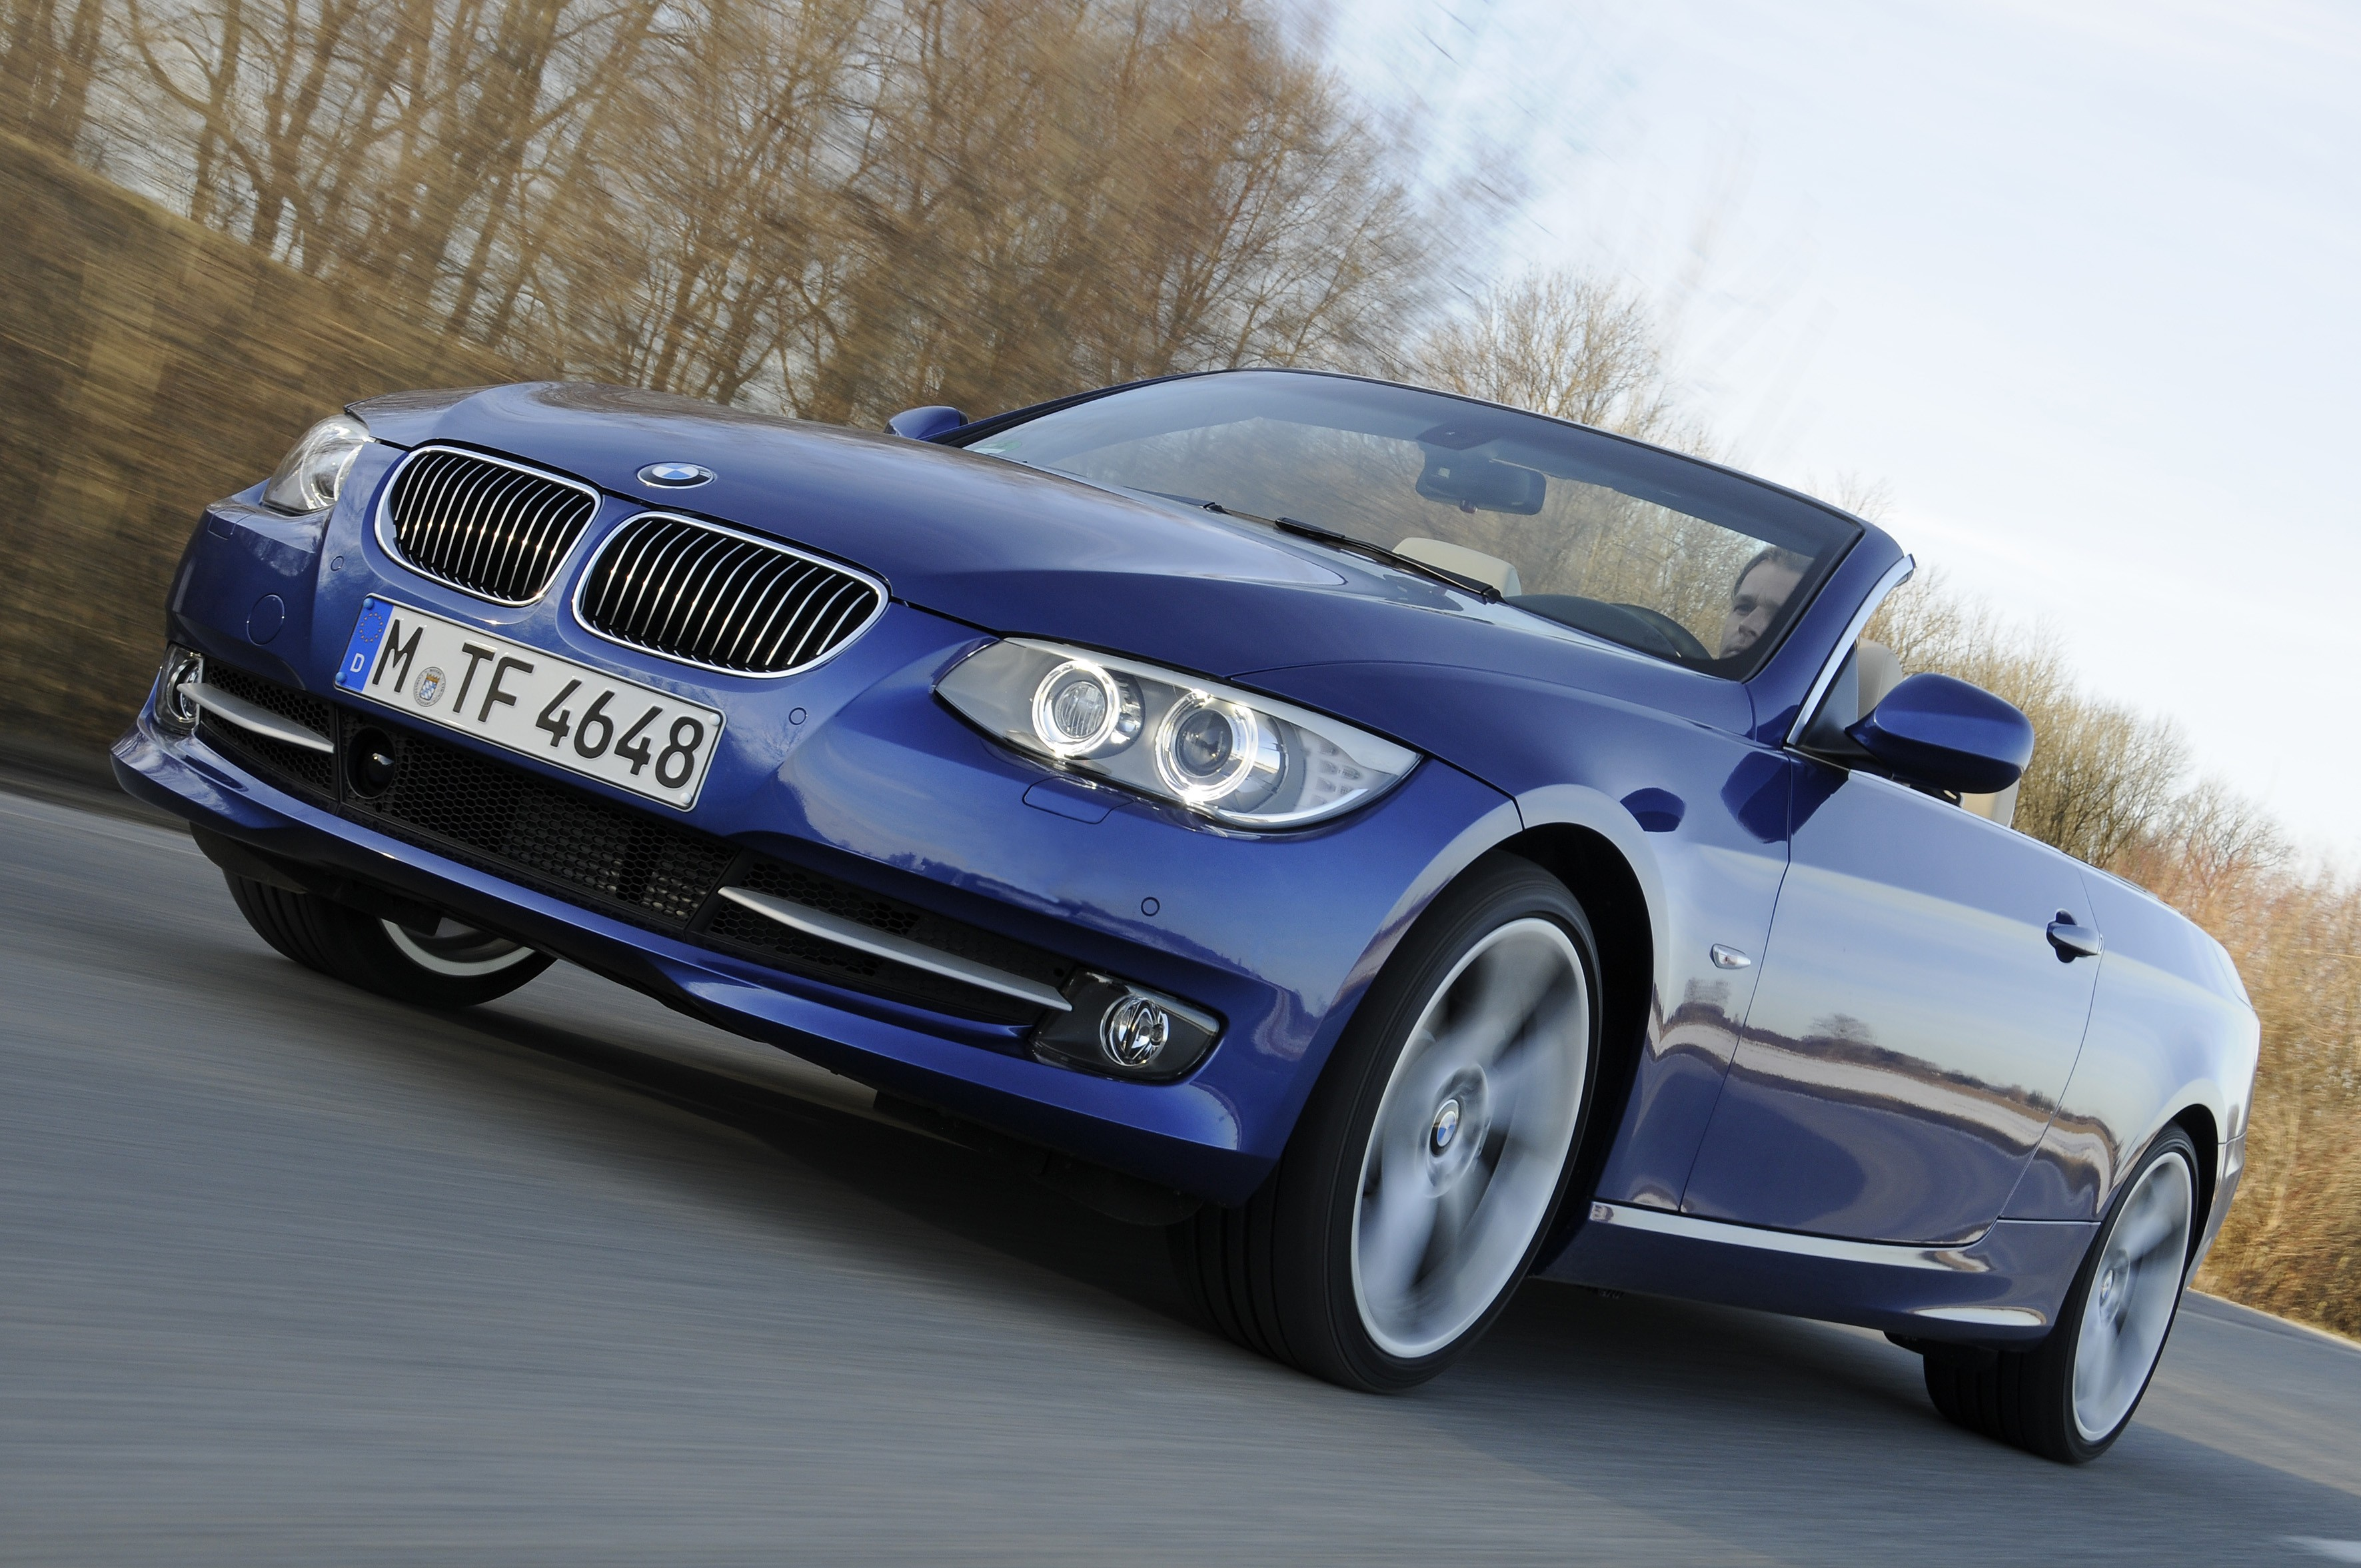 convertible and tests review test used report bmw road